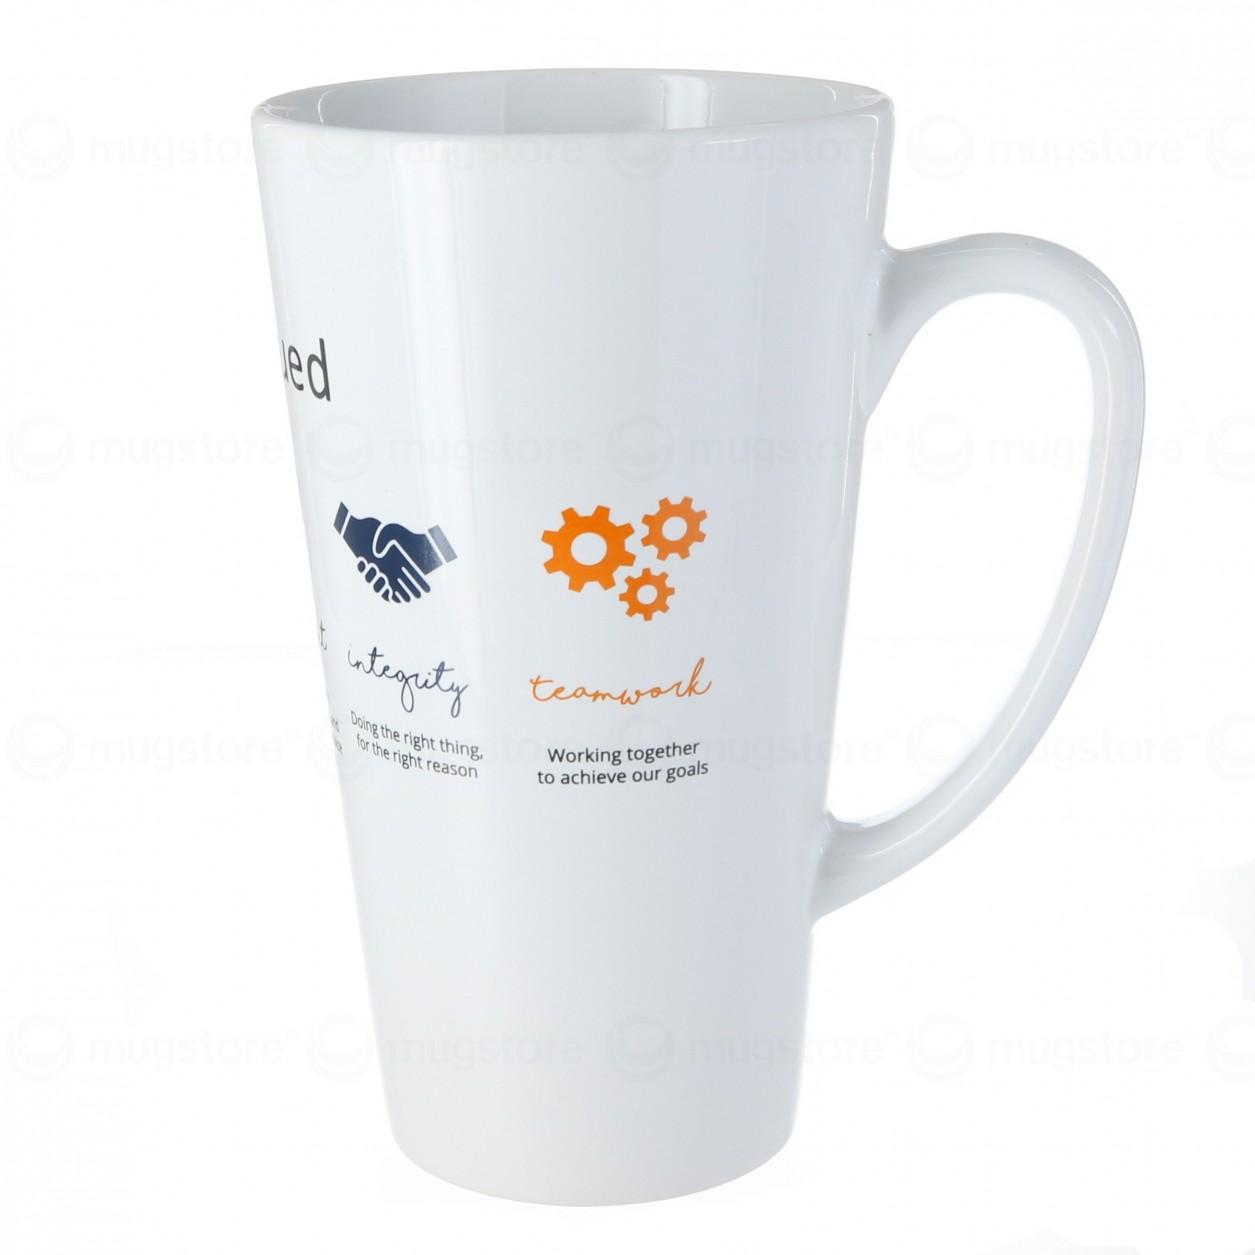 Cafe Latte Mug Branded From 1 76 At Mugstore